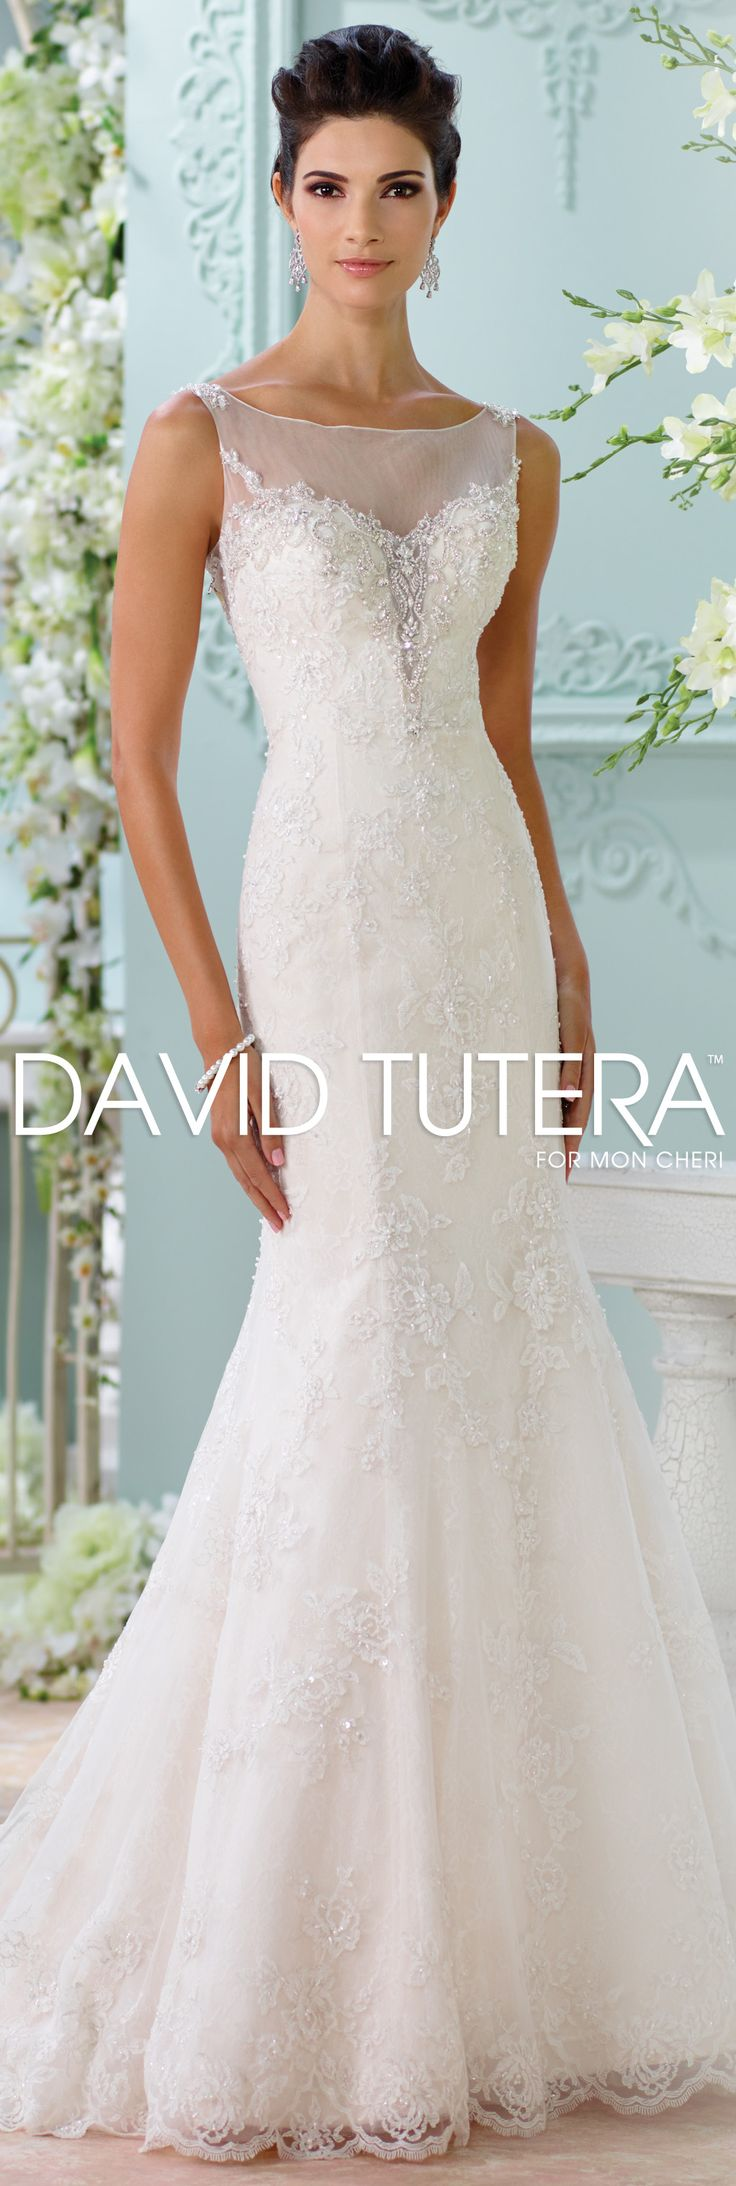 Top 25 best marigold wedding ideas on pinterest for David tutera beach wedding dresses